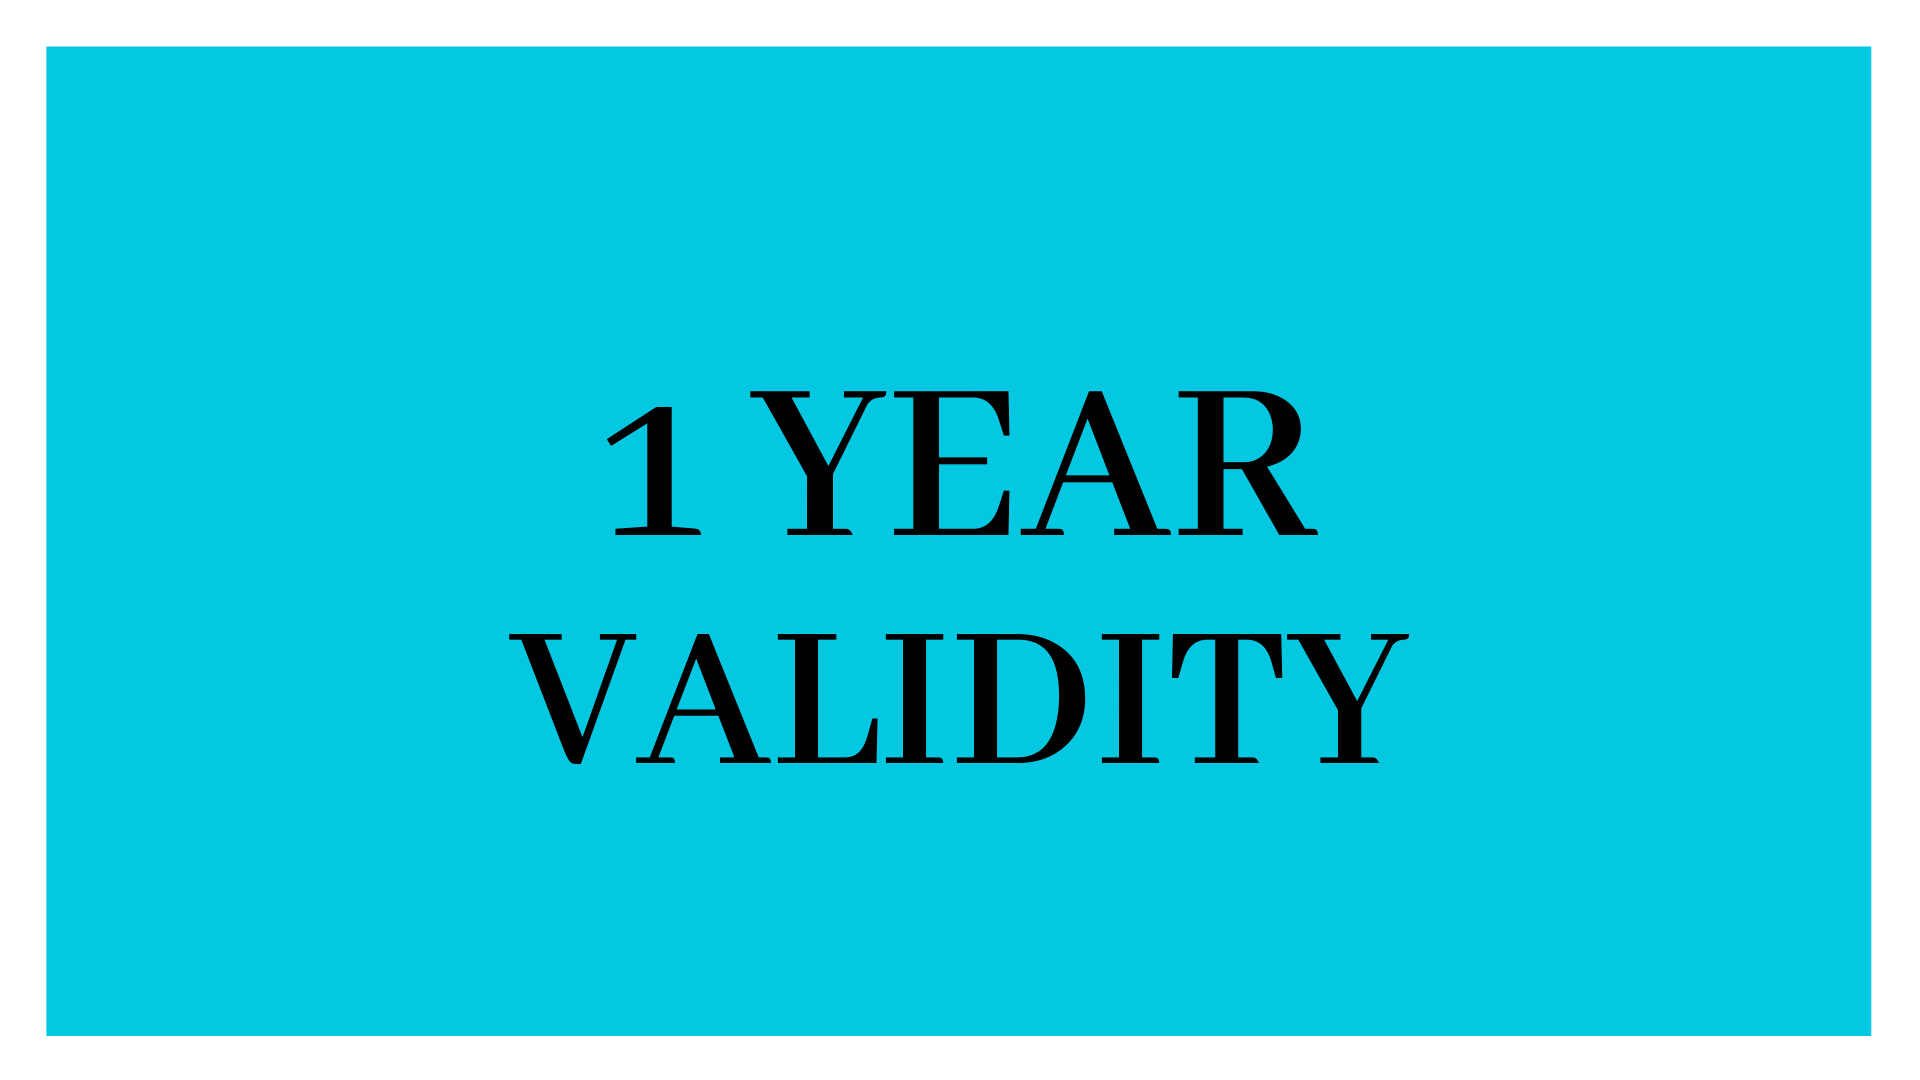 1 Years validity period...